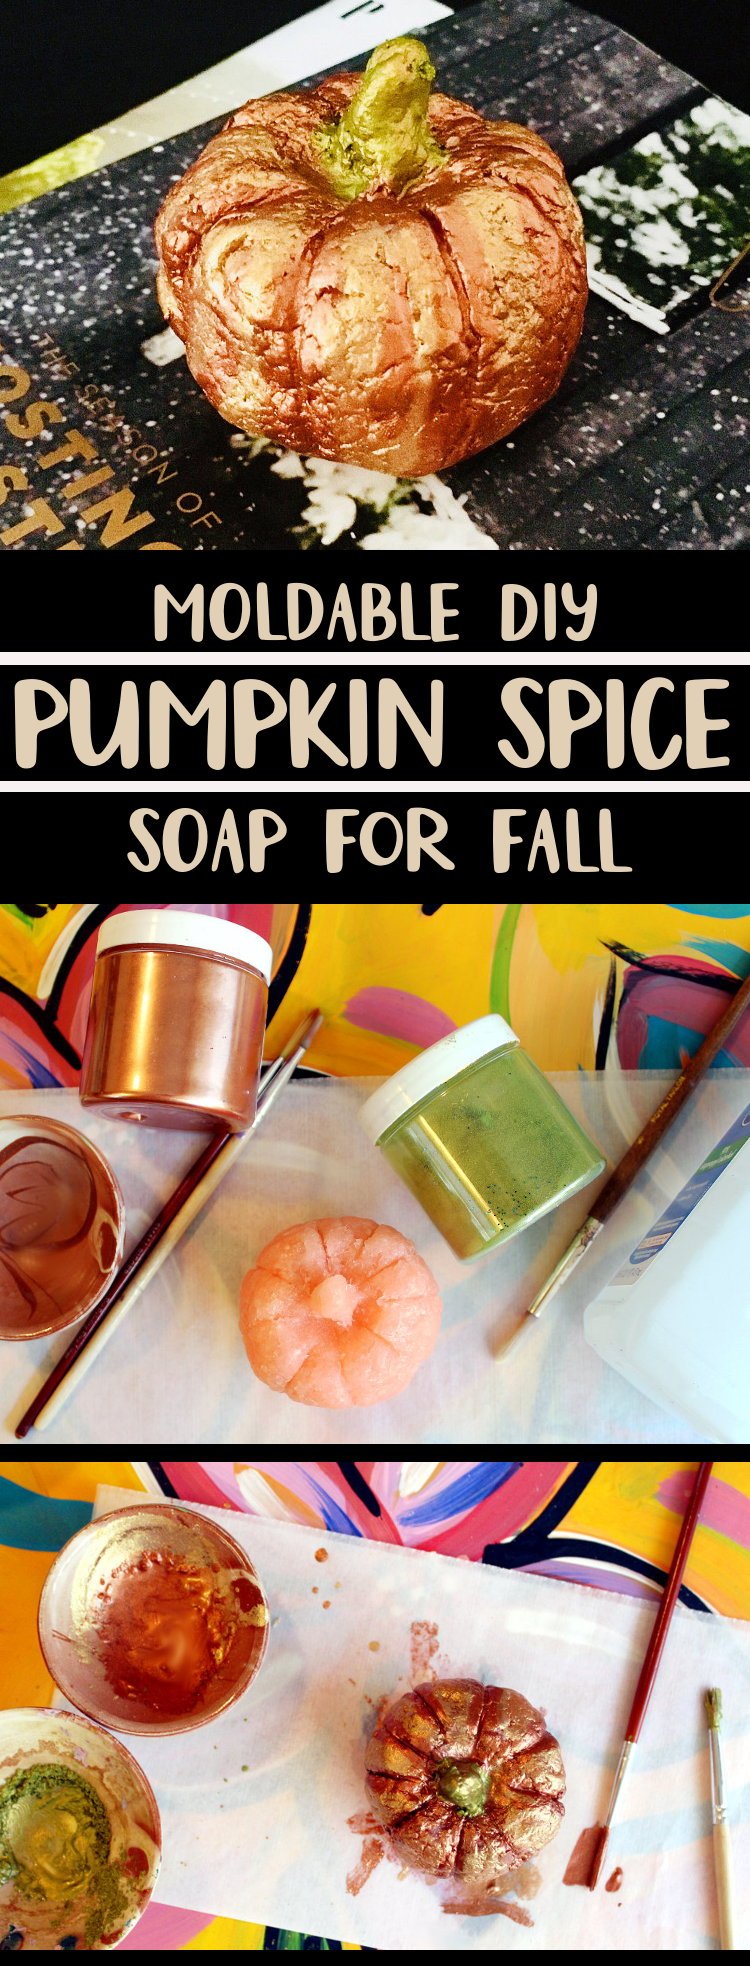 DIY Pumpkin Spice Soap that You Can Mold! A Fun Weekend DIY Project for All Ages. This DIY pumpkin spice soap makes a fun weekend craft project for both kids and adults! Made with a super easy moldable melt and pour soap recipe, these pumpkin spice soaps are also great for gifting.